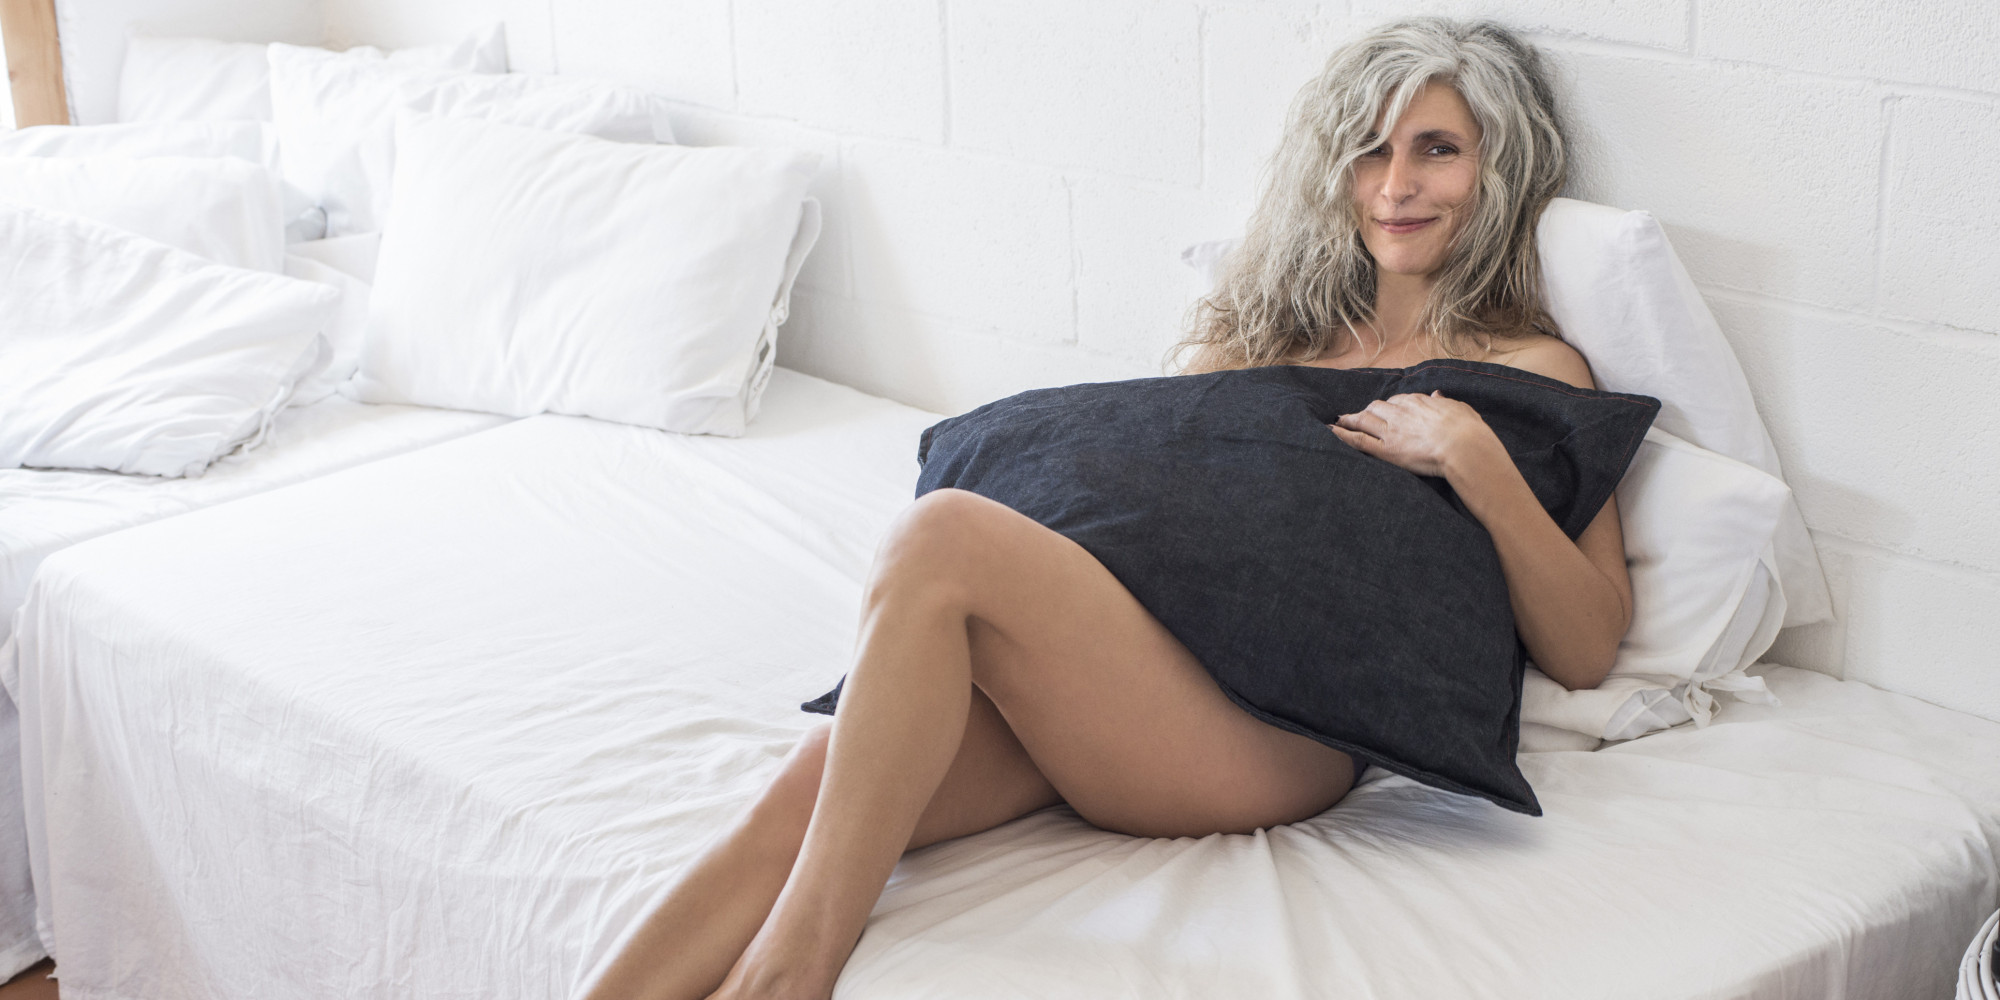 Old Mature Ass 19 women over 60 i would still totally smash - wow gallery